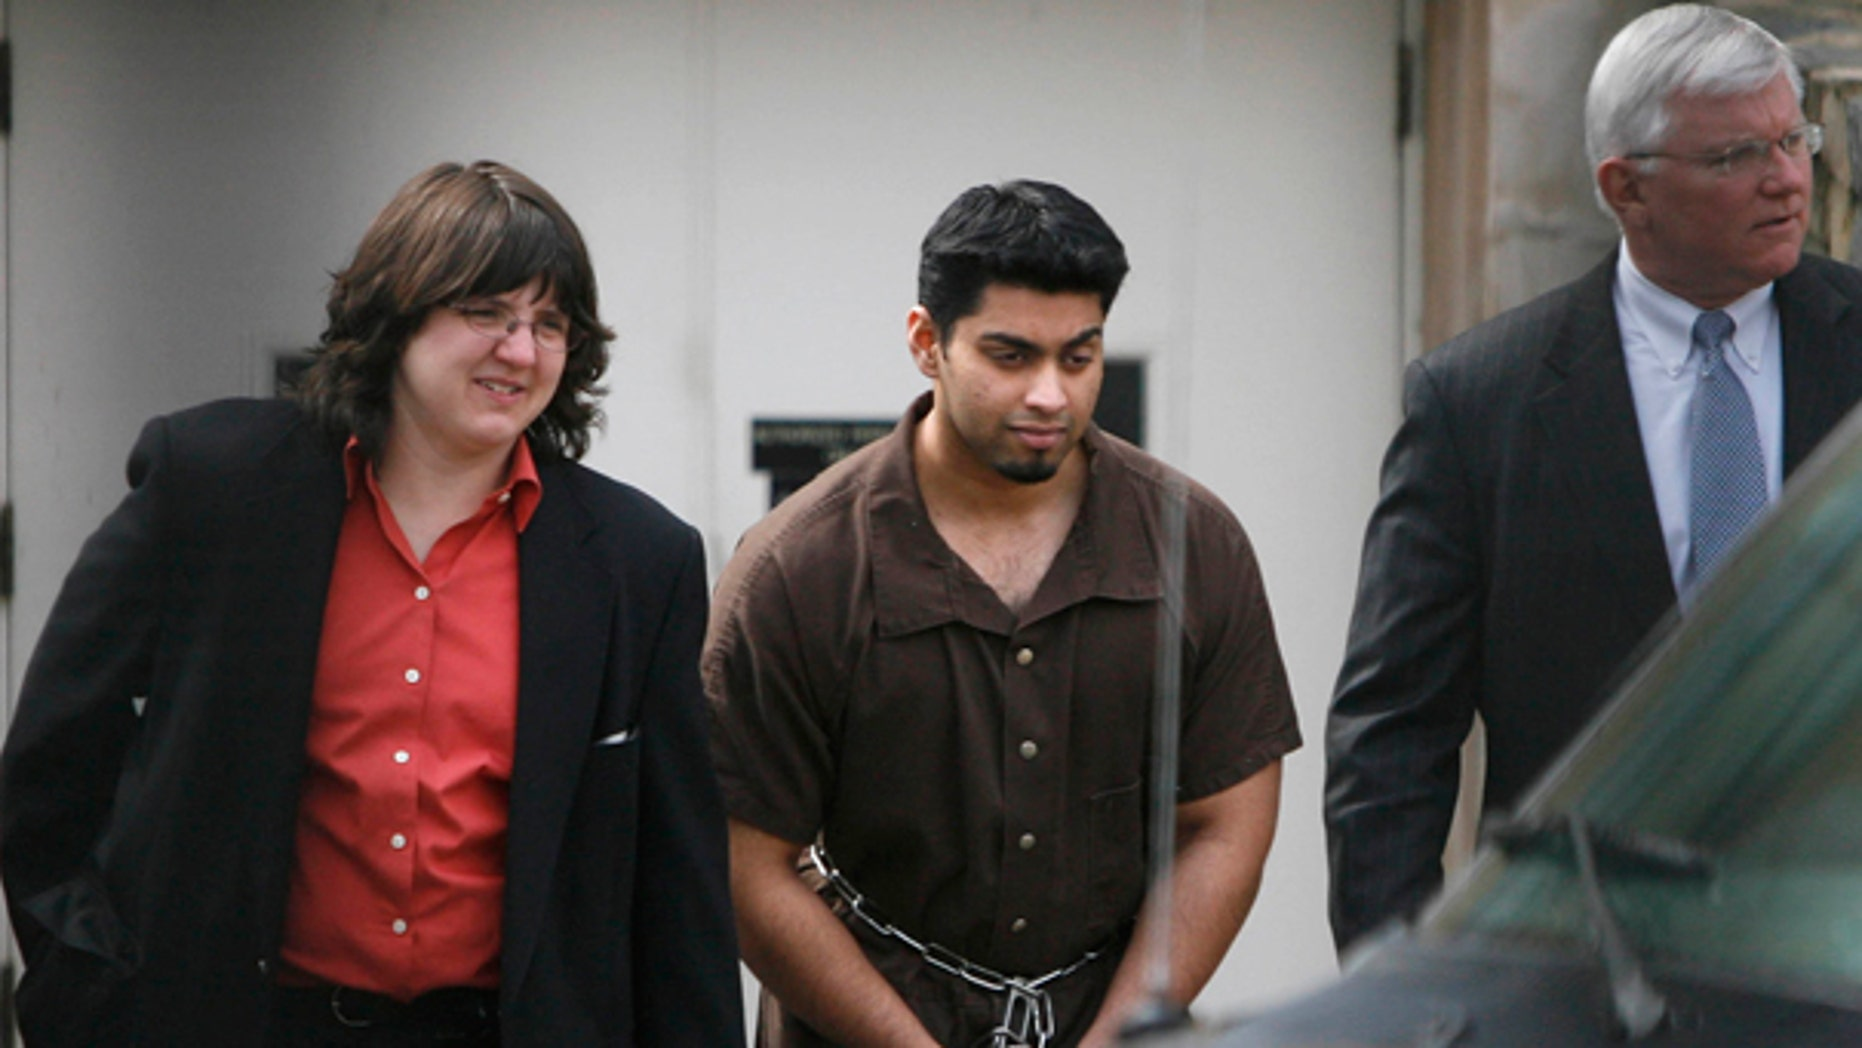 In this March 21, 2007 photo, taken through a fence, Khaleel Ahmed, 26, of Chicago, is led out of the Federal Courthouse in Toledo, Ohio, by a federal agent and accompanied by an attorney.  (AP)